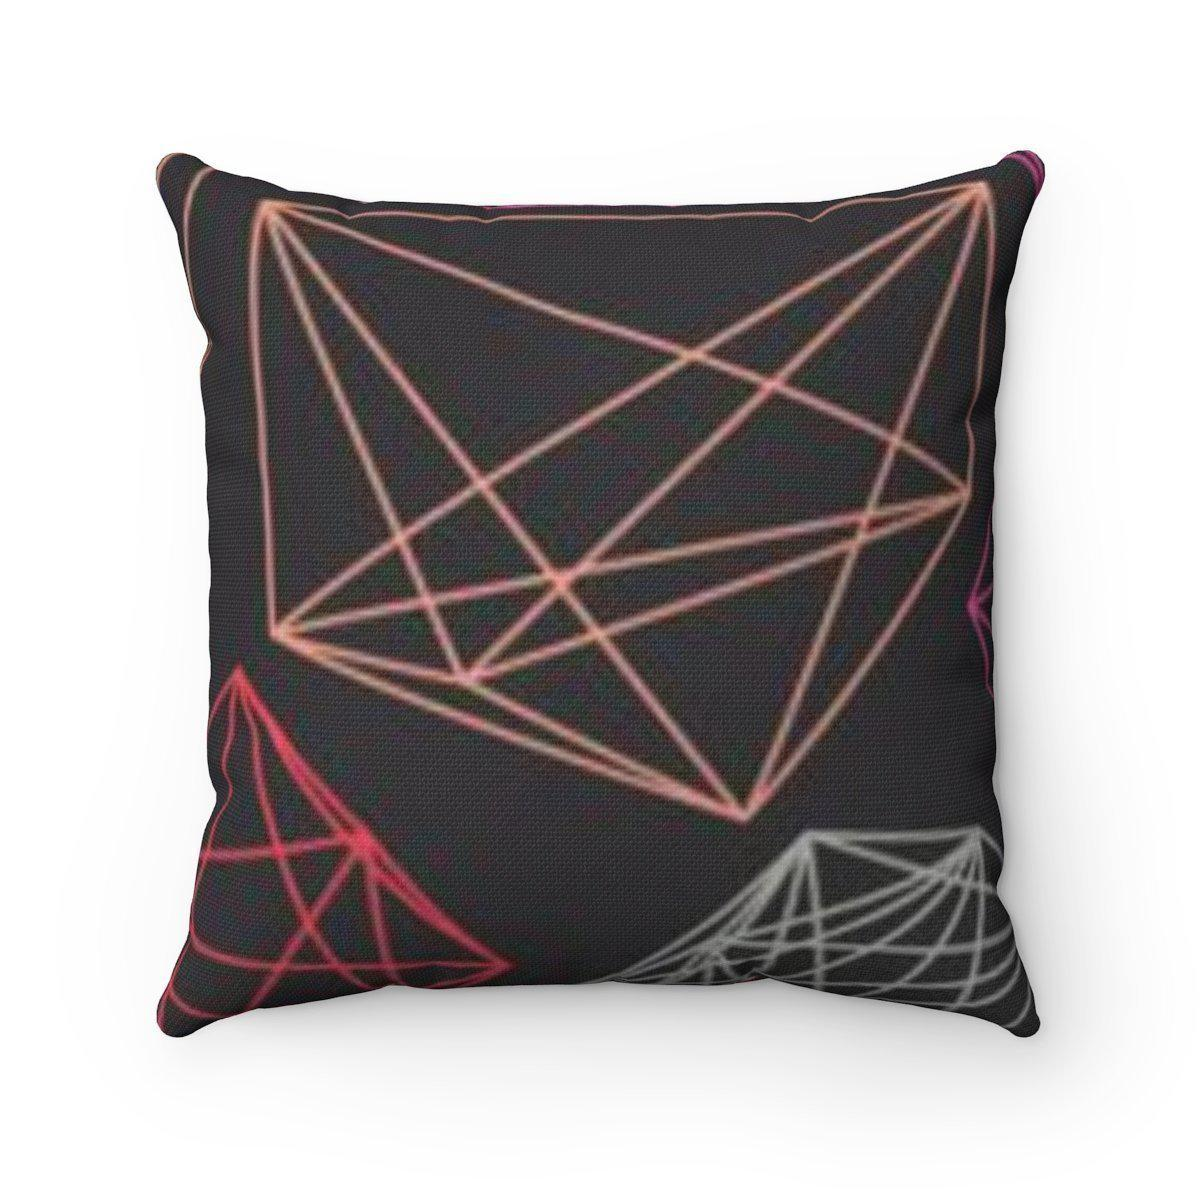 Maison d'Elite modern decorative cushion cover-Home Decor - Decorative Accents - Pillows & Throws - Decorative Pillows-Maison d'Elite-18x18-Très Elite